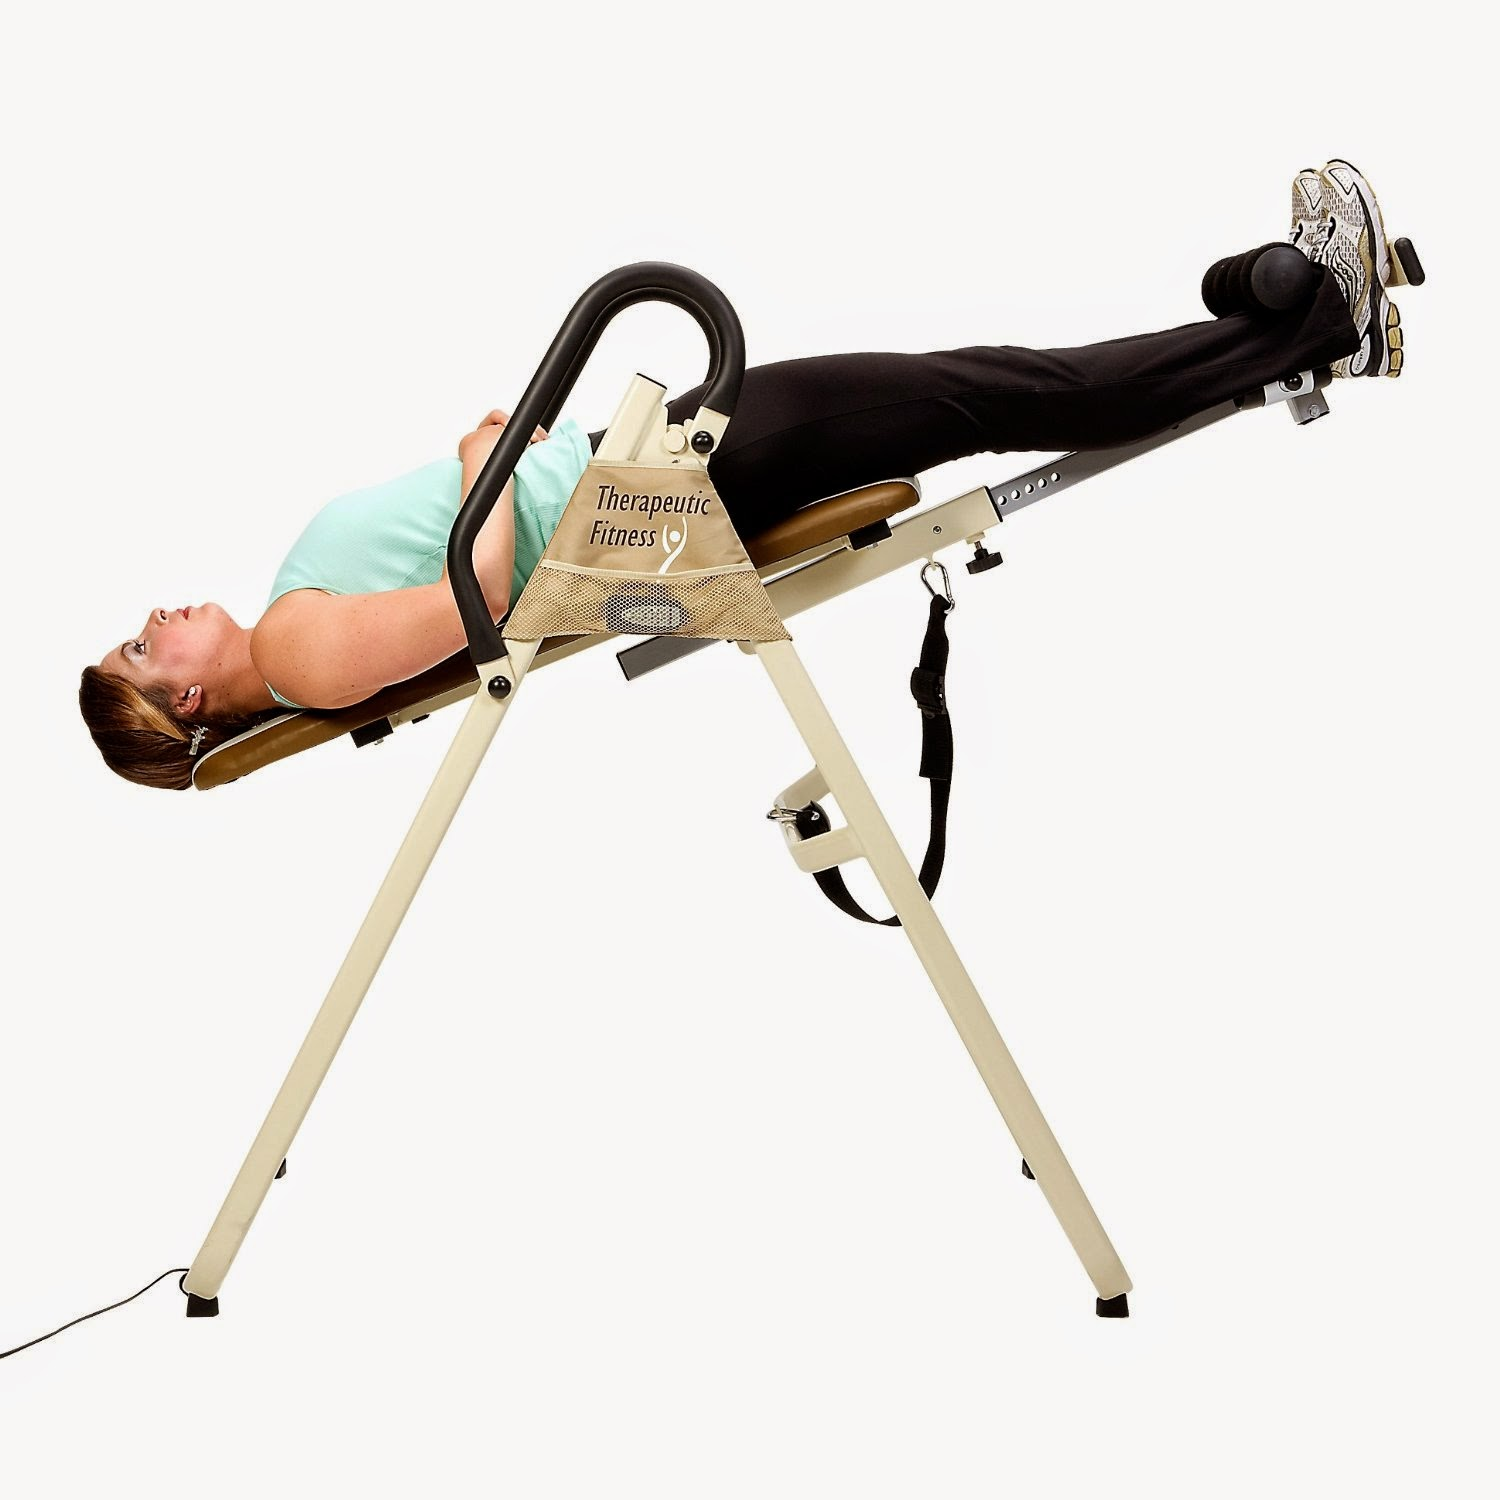 Starting off at a reduced angle on an inversion table